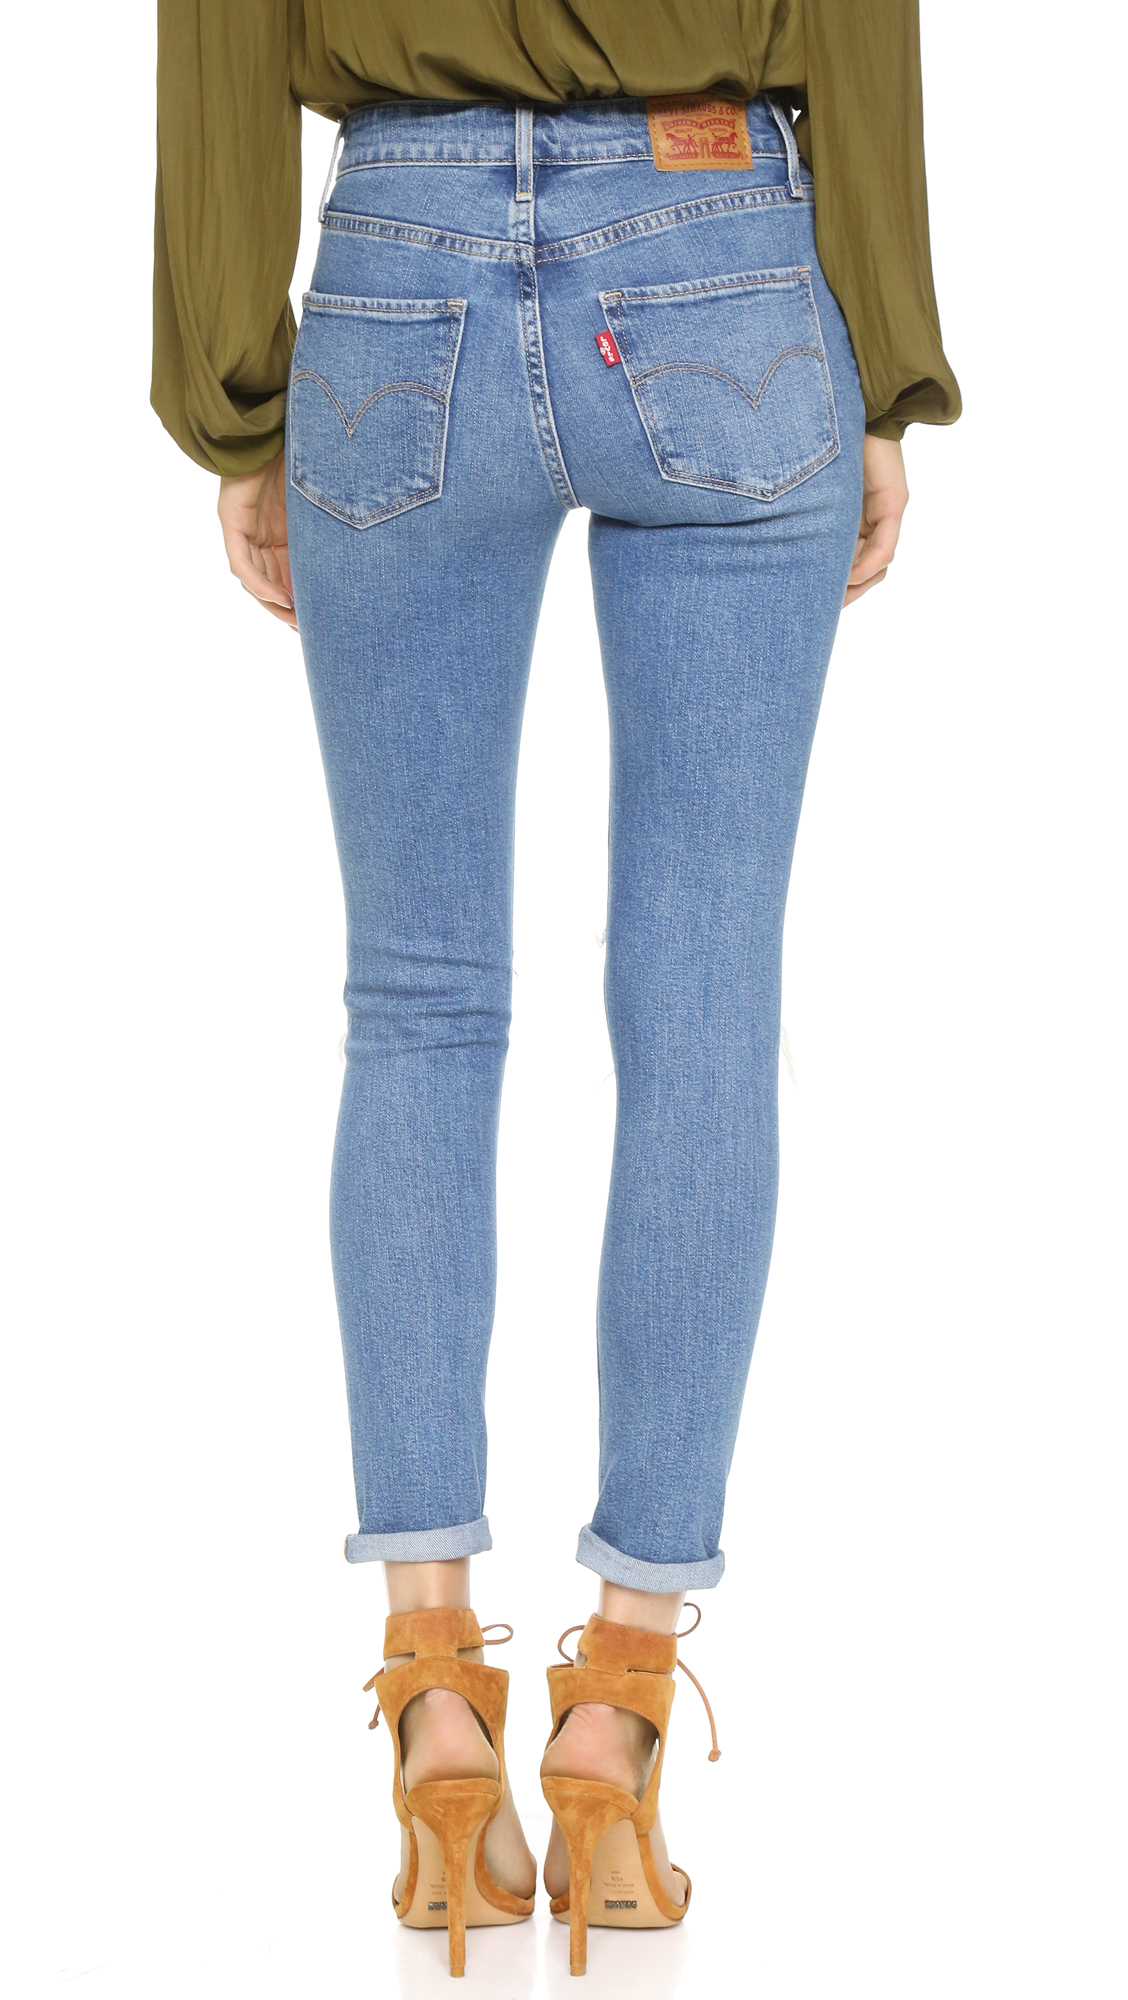 Levi's 721 High Rise Distressed Skinny Jeans | 15% off first app ...